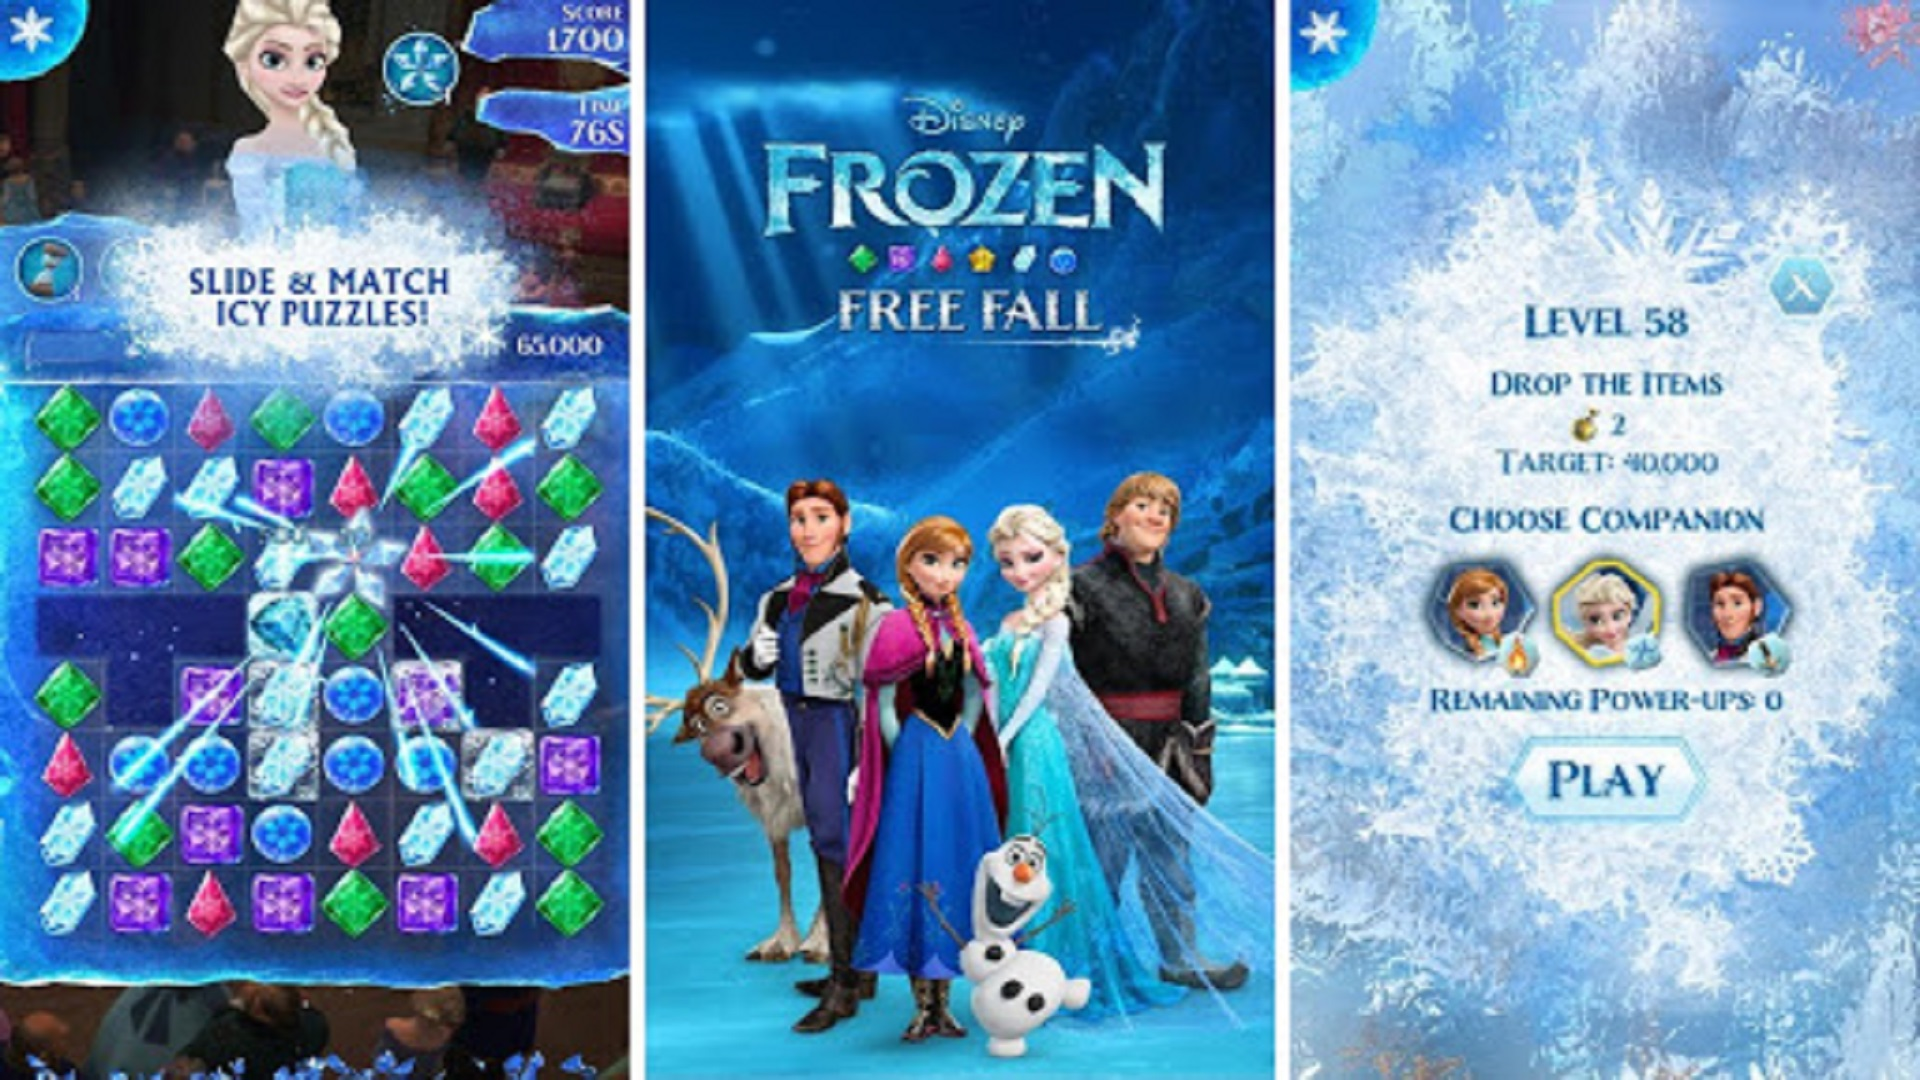 big-nice-look-hd-frozen-free-fall-hd-wallpapers-free